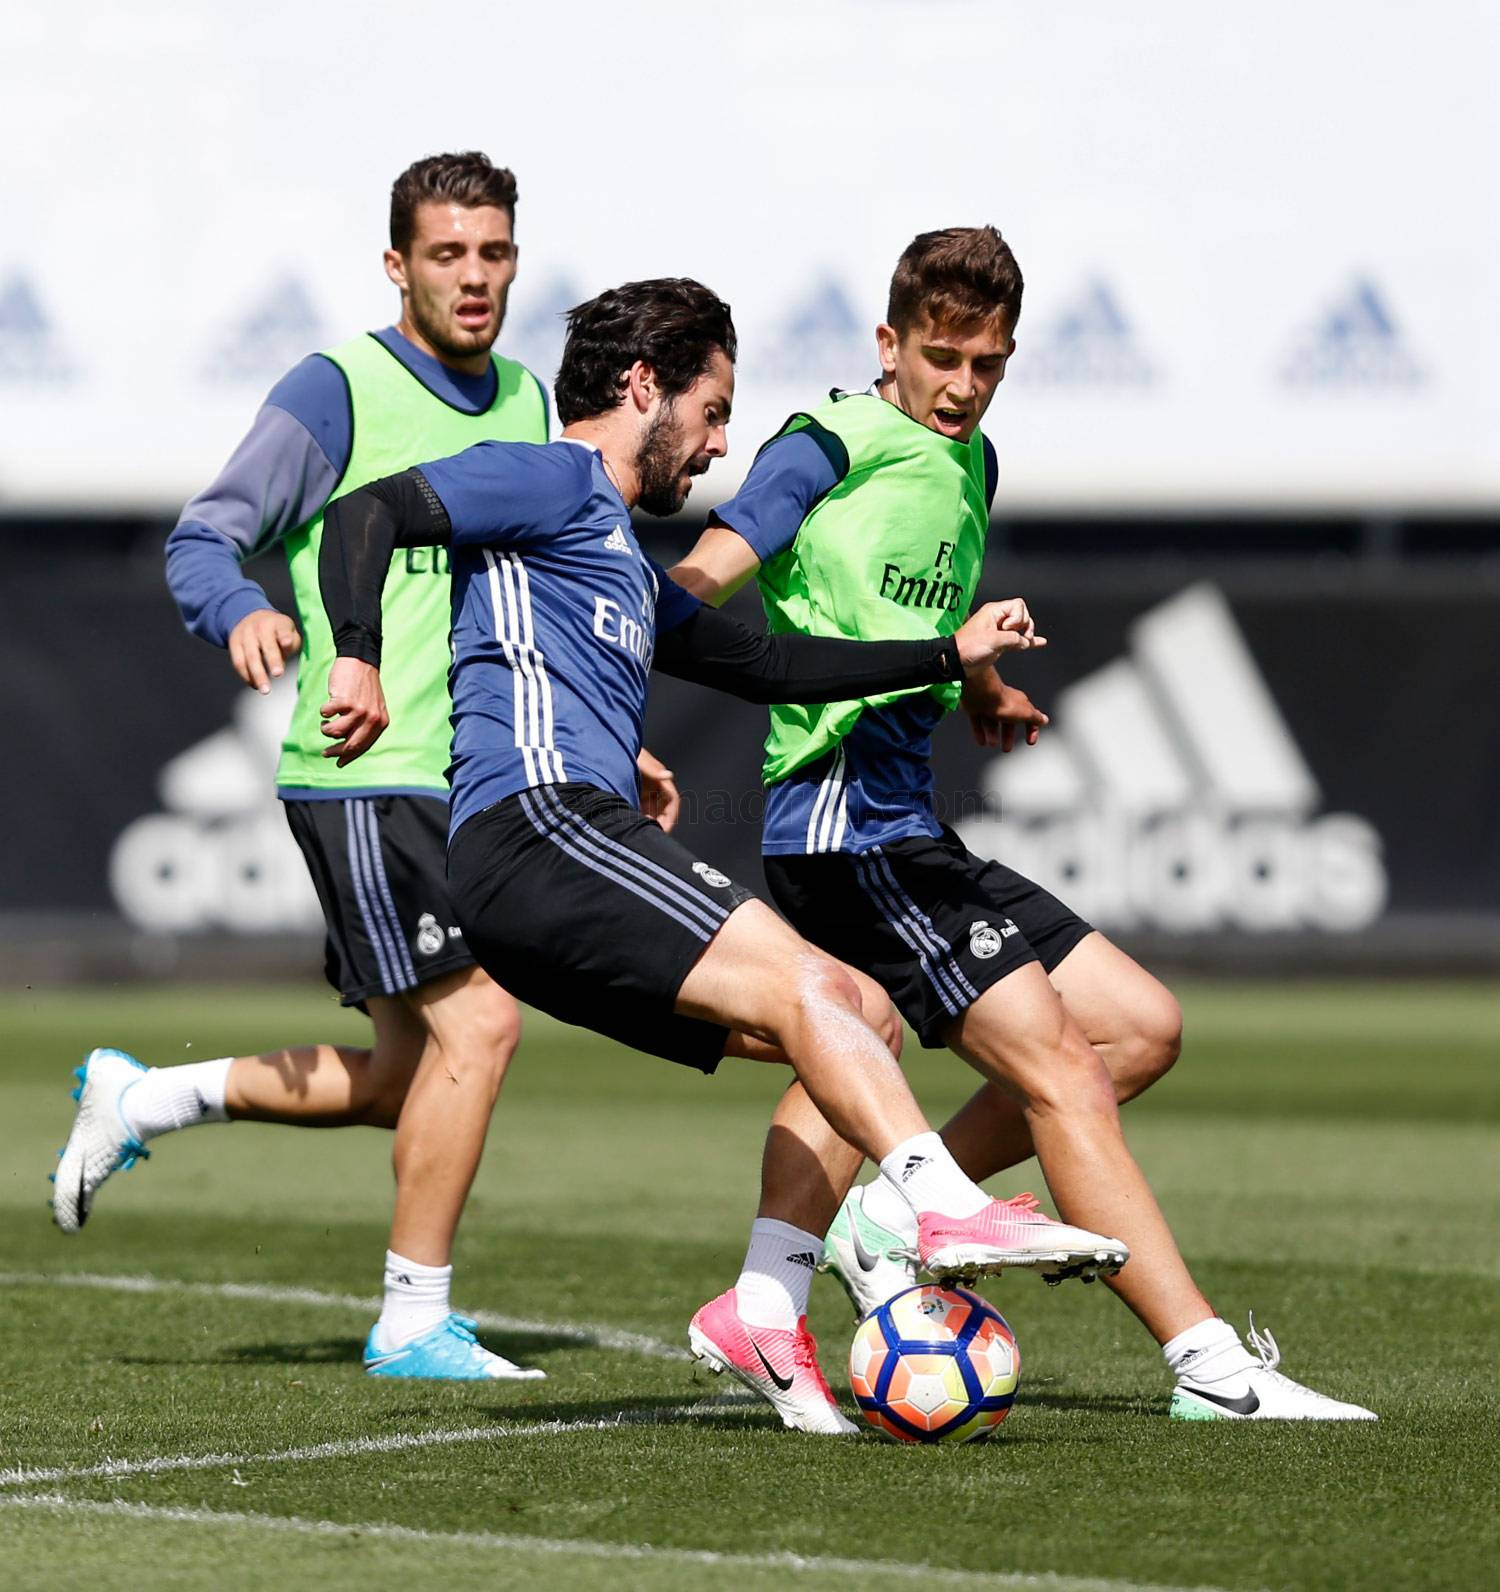 Real Madrid - Entrenamiento del Real Madrid - 24-04-2017